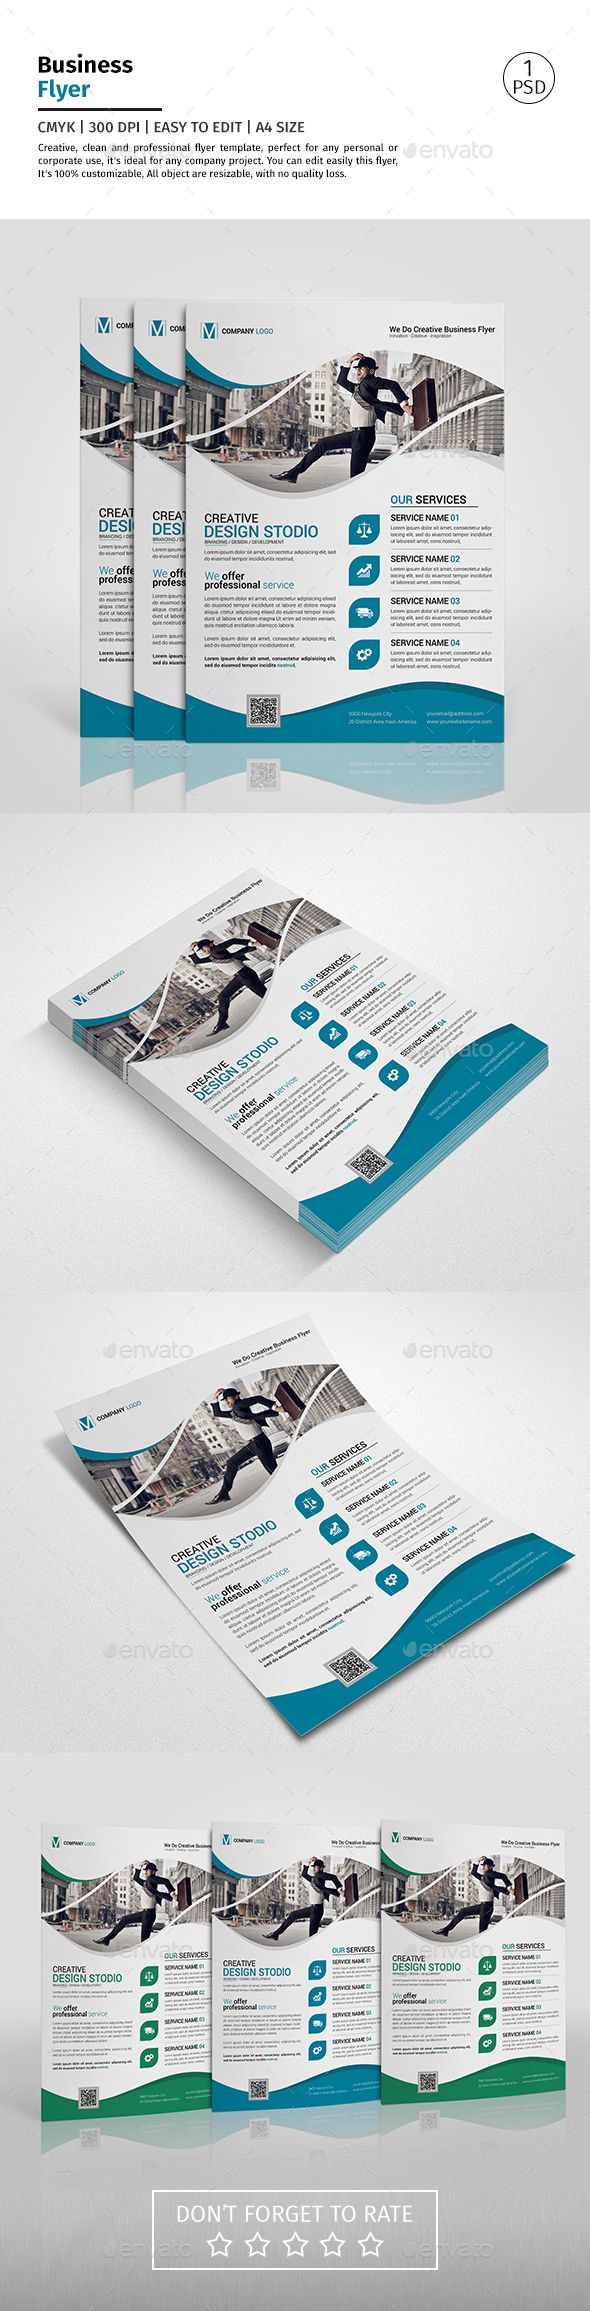 cv lettre de motivation psd commerciale